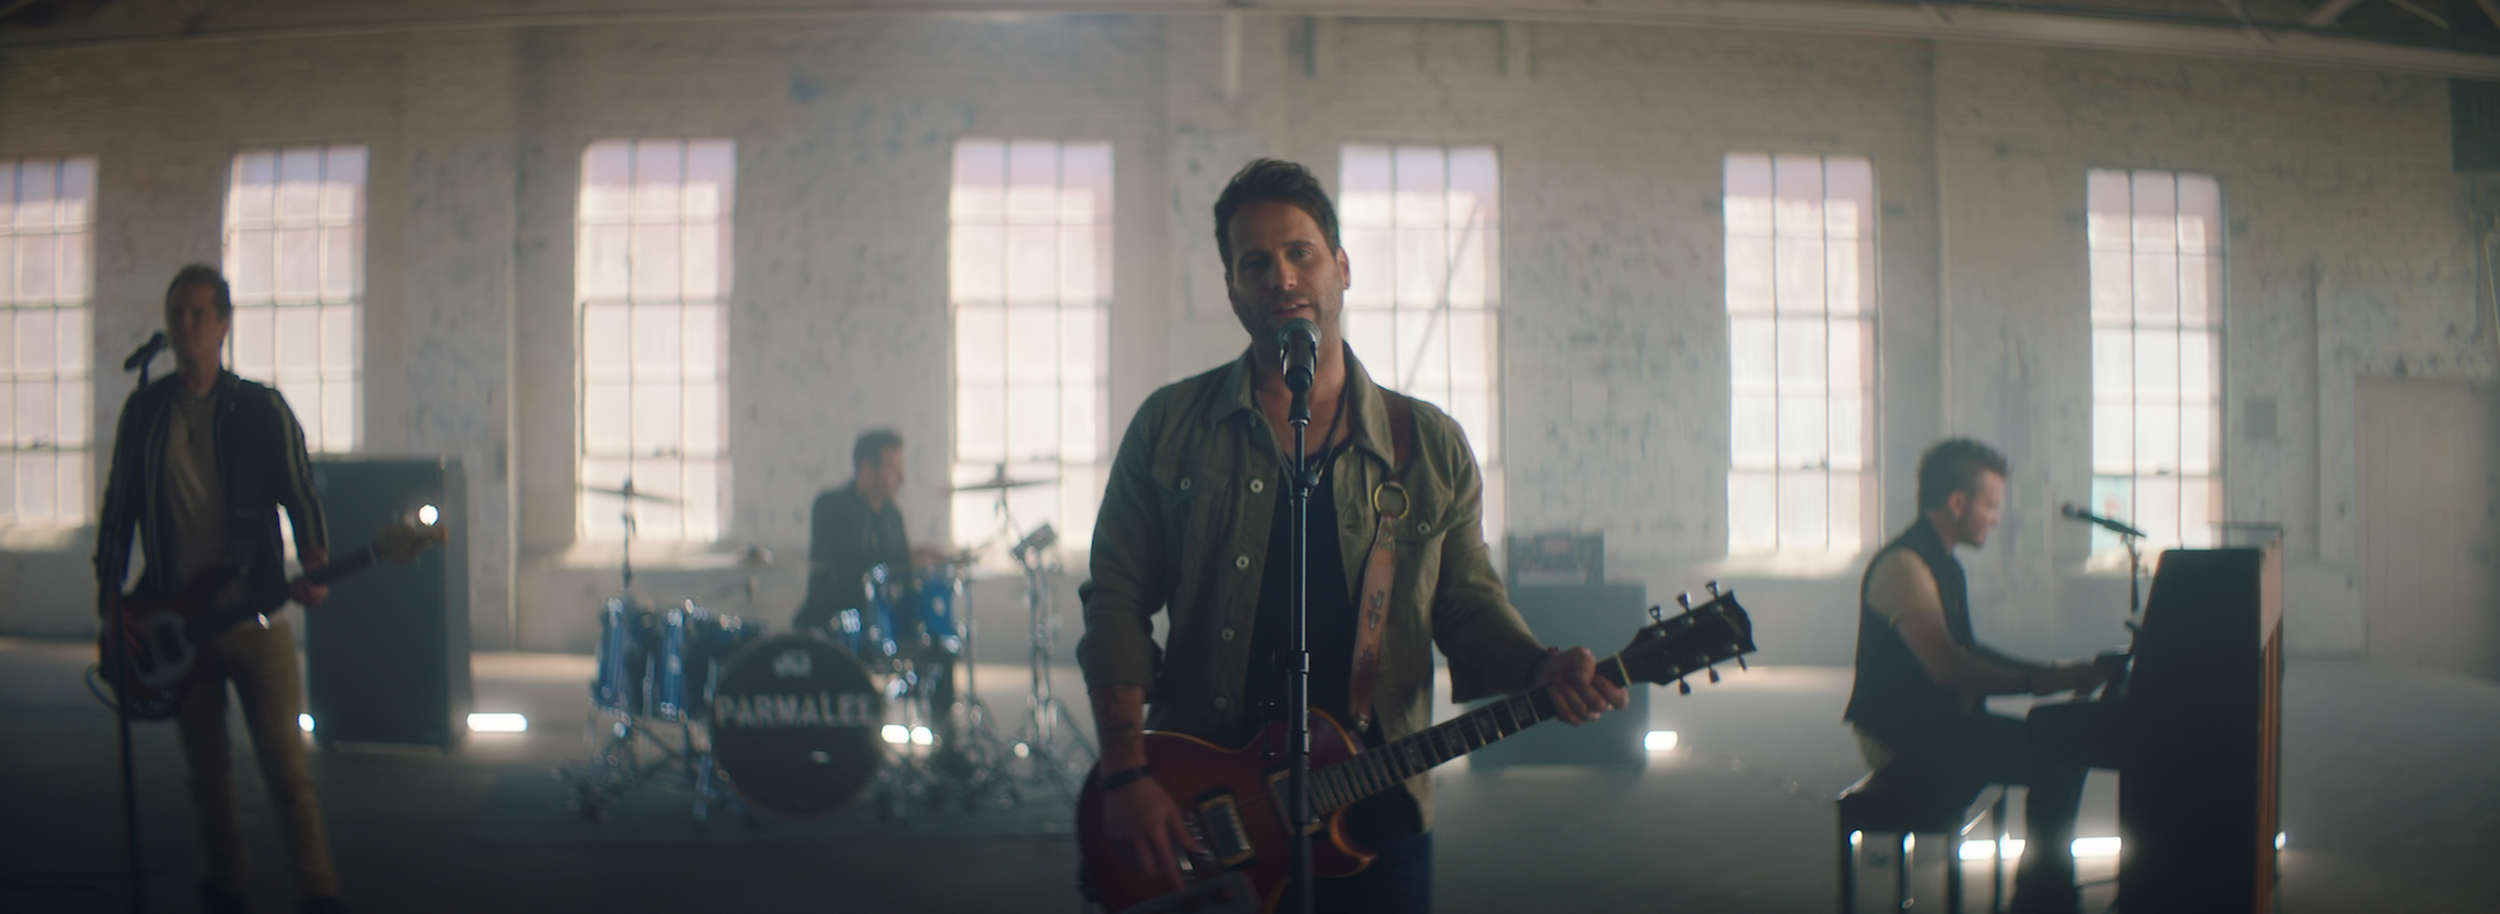 Parmalee-SundayMorning-2.png